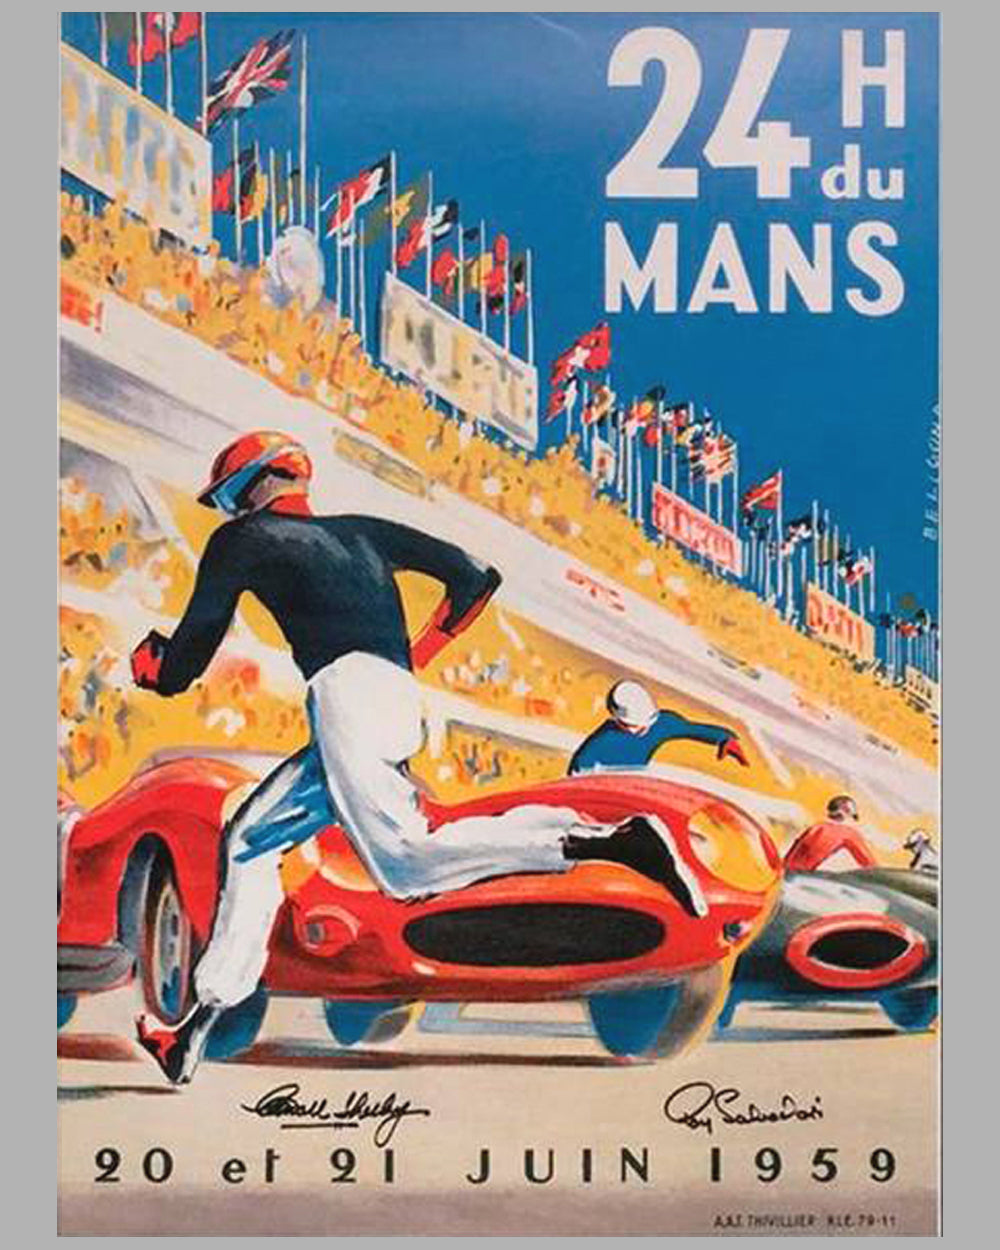 1959 - 24 Heures du Mans official ACO reproduction event poster by Beligond, France, autographed